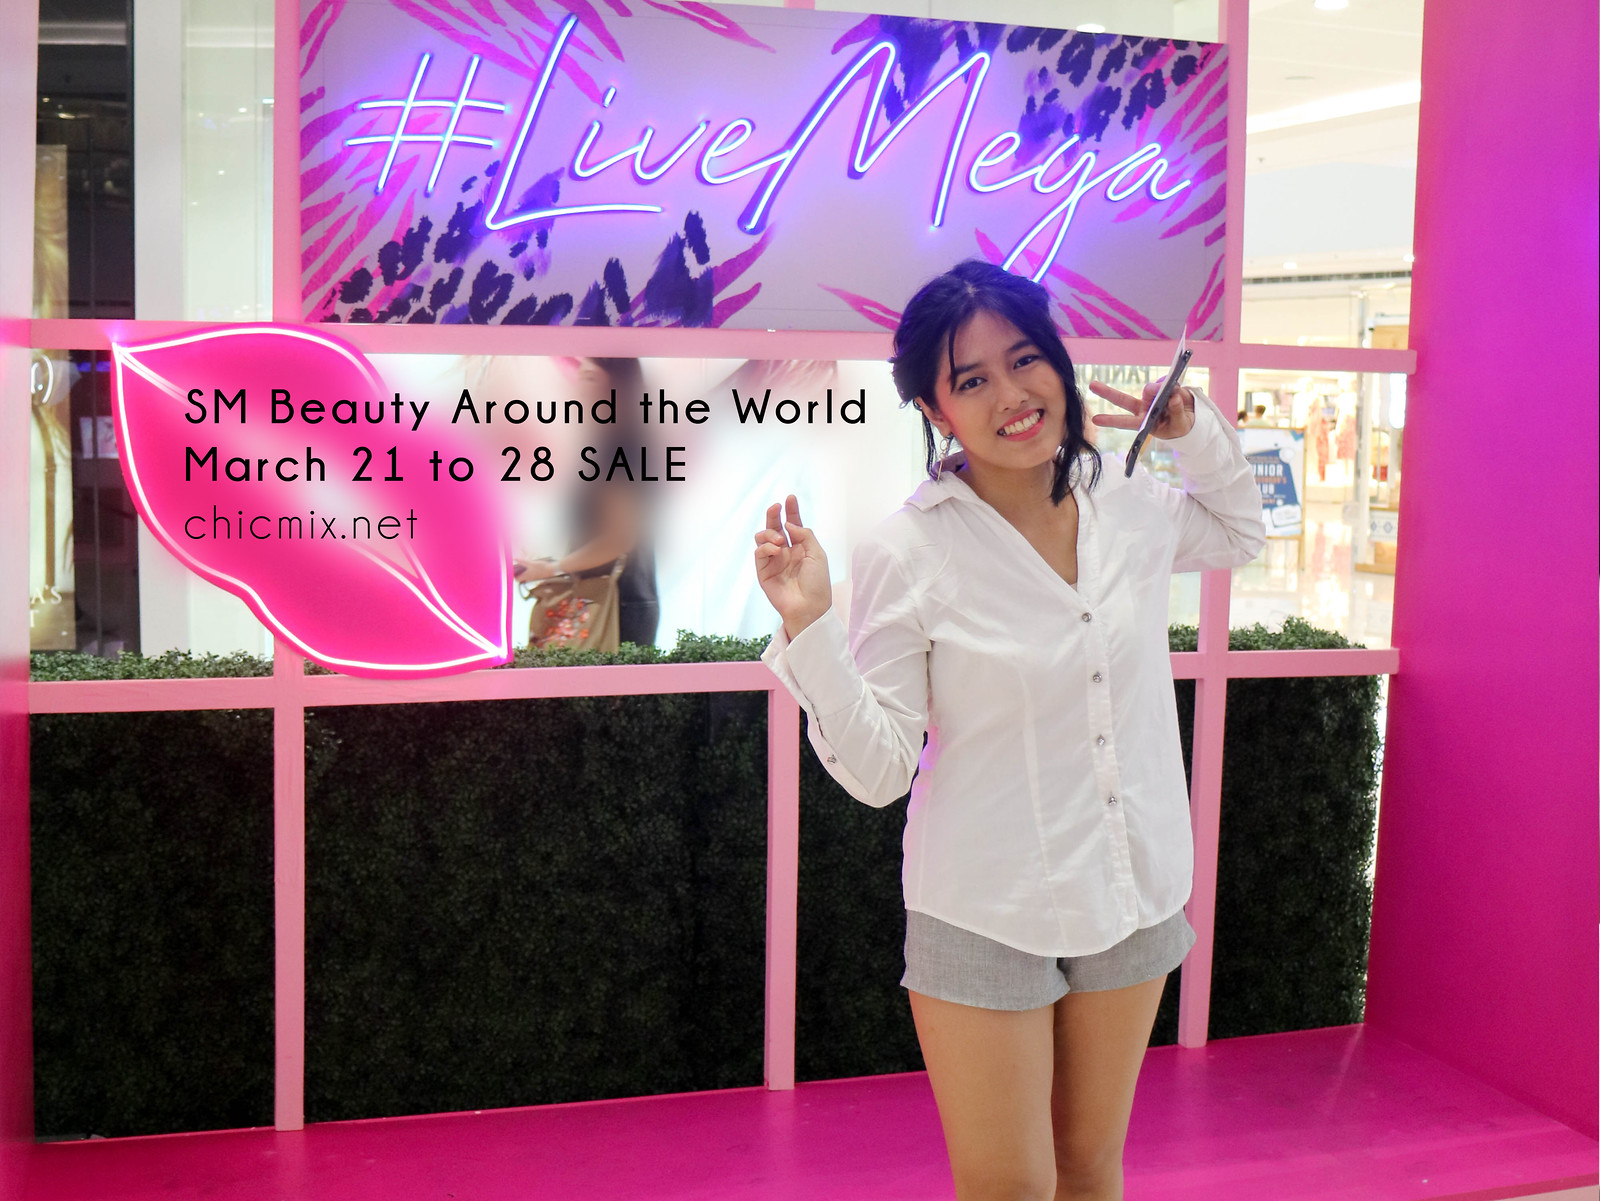 Live Mega and Get Fierce! Shop at SM Megamall's Beauty Around the World